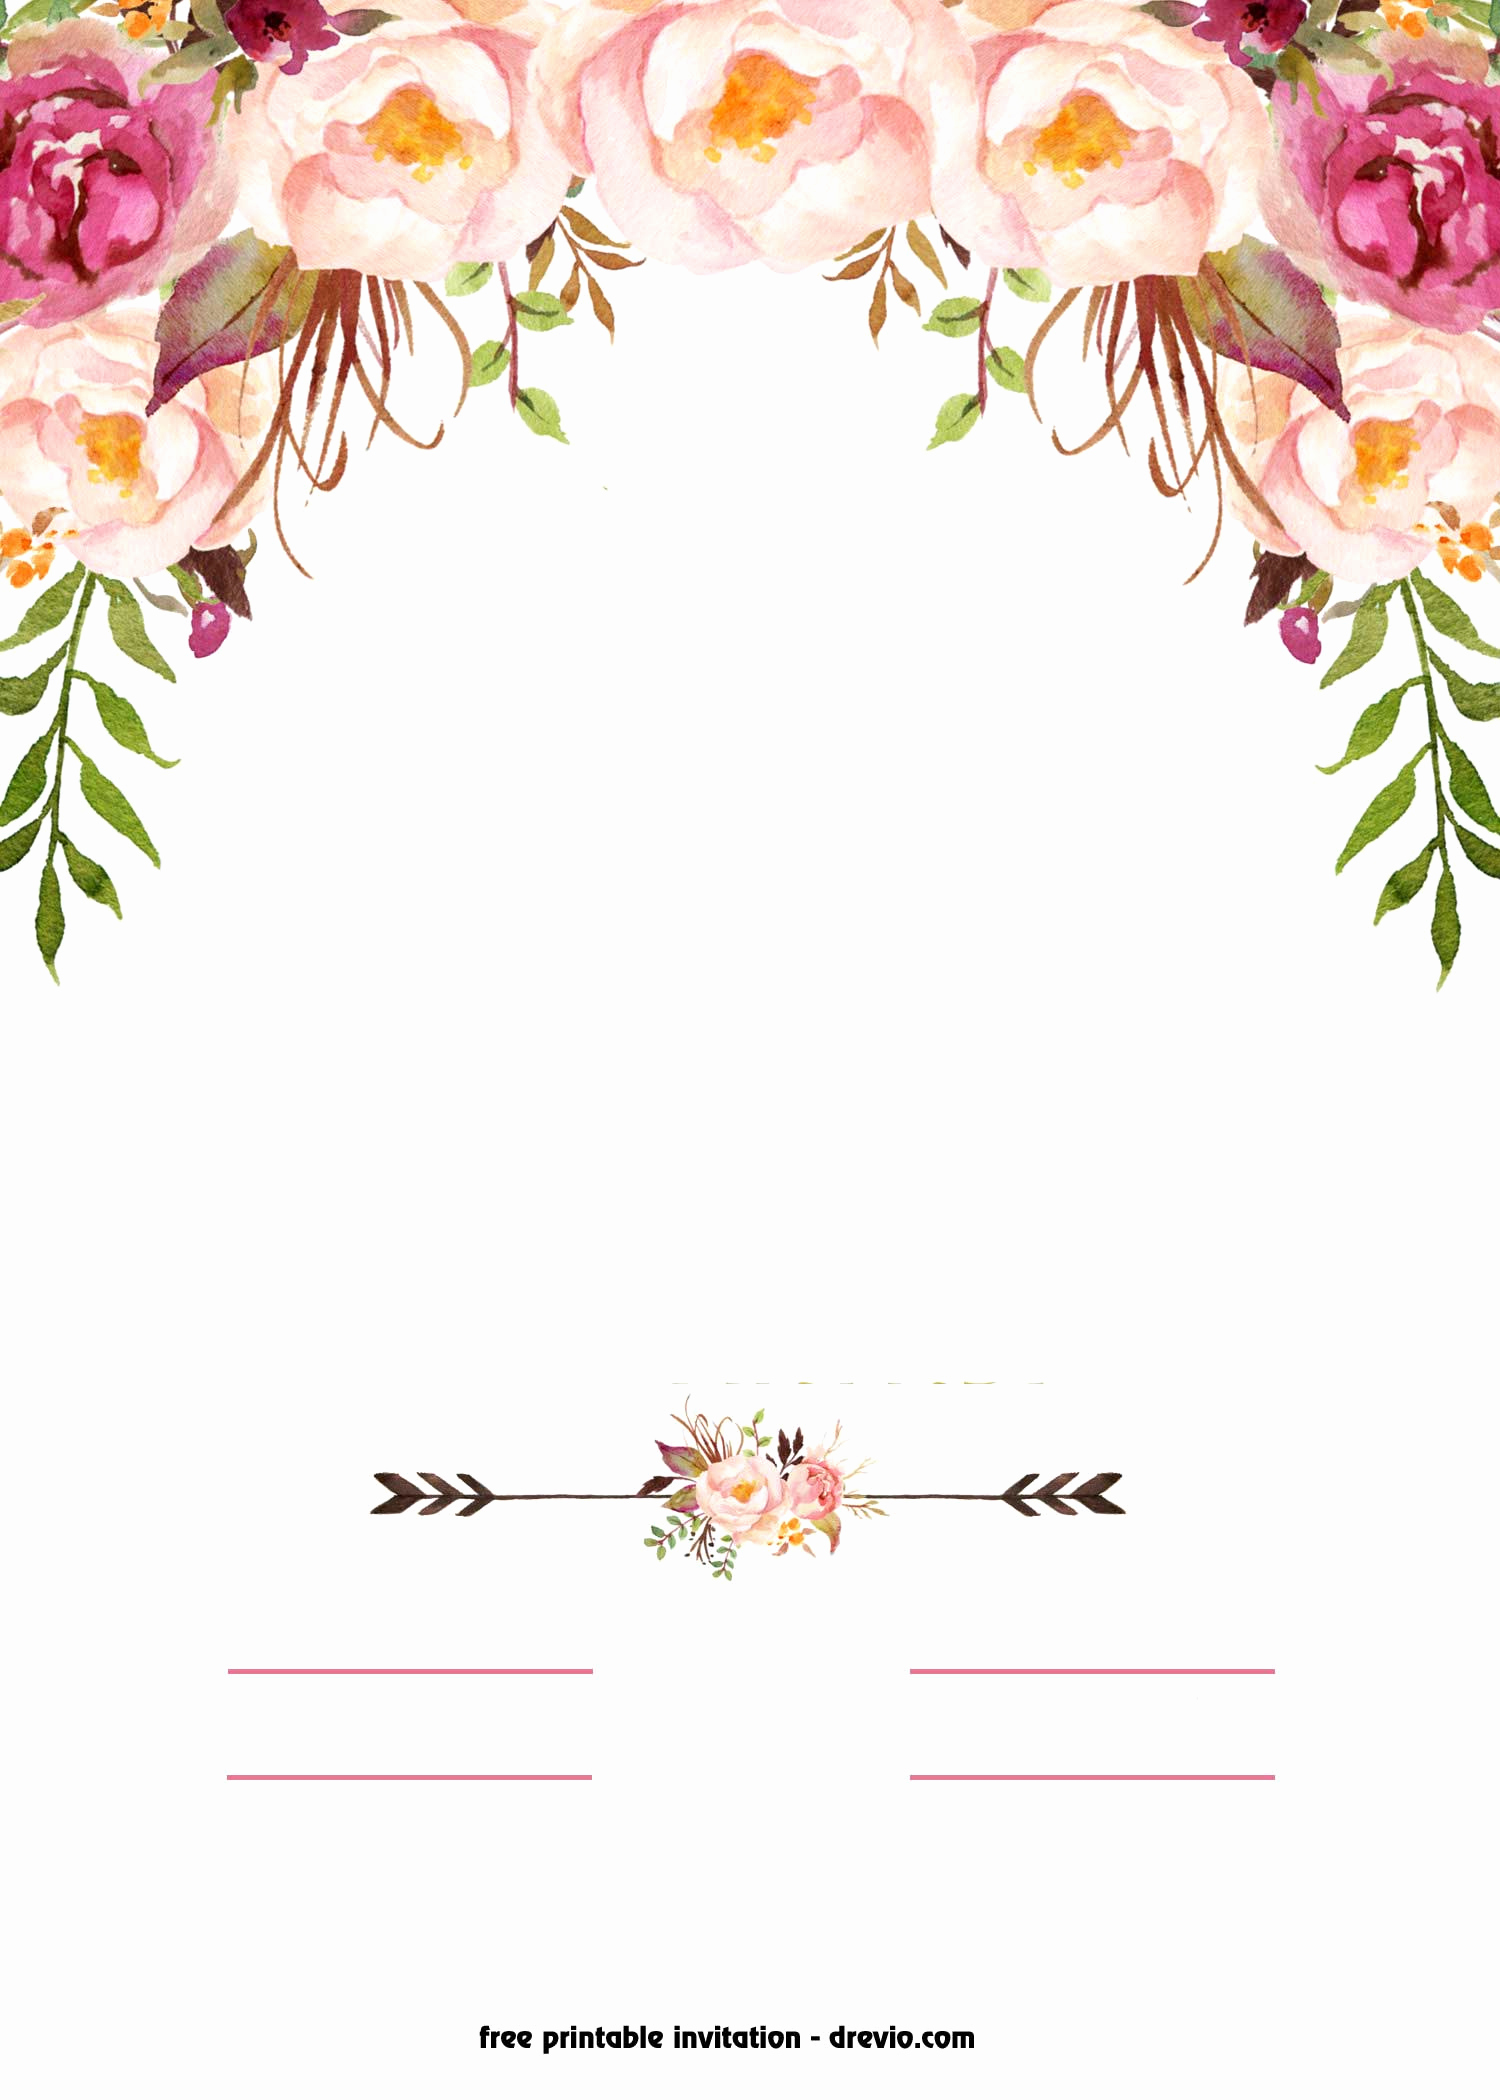 Blank Invitation Templates Free Download Inspirational Free Printable Boho Chic Flower Baby Shower Invitation